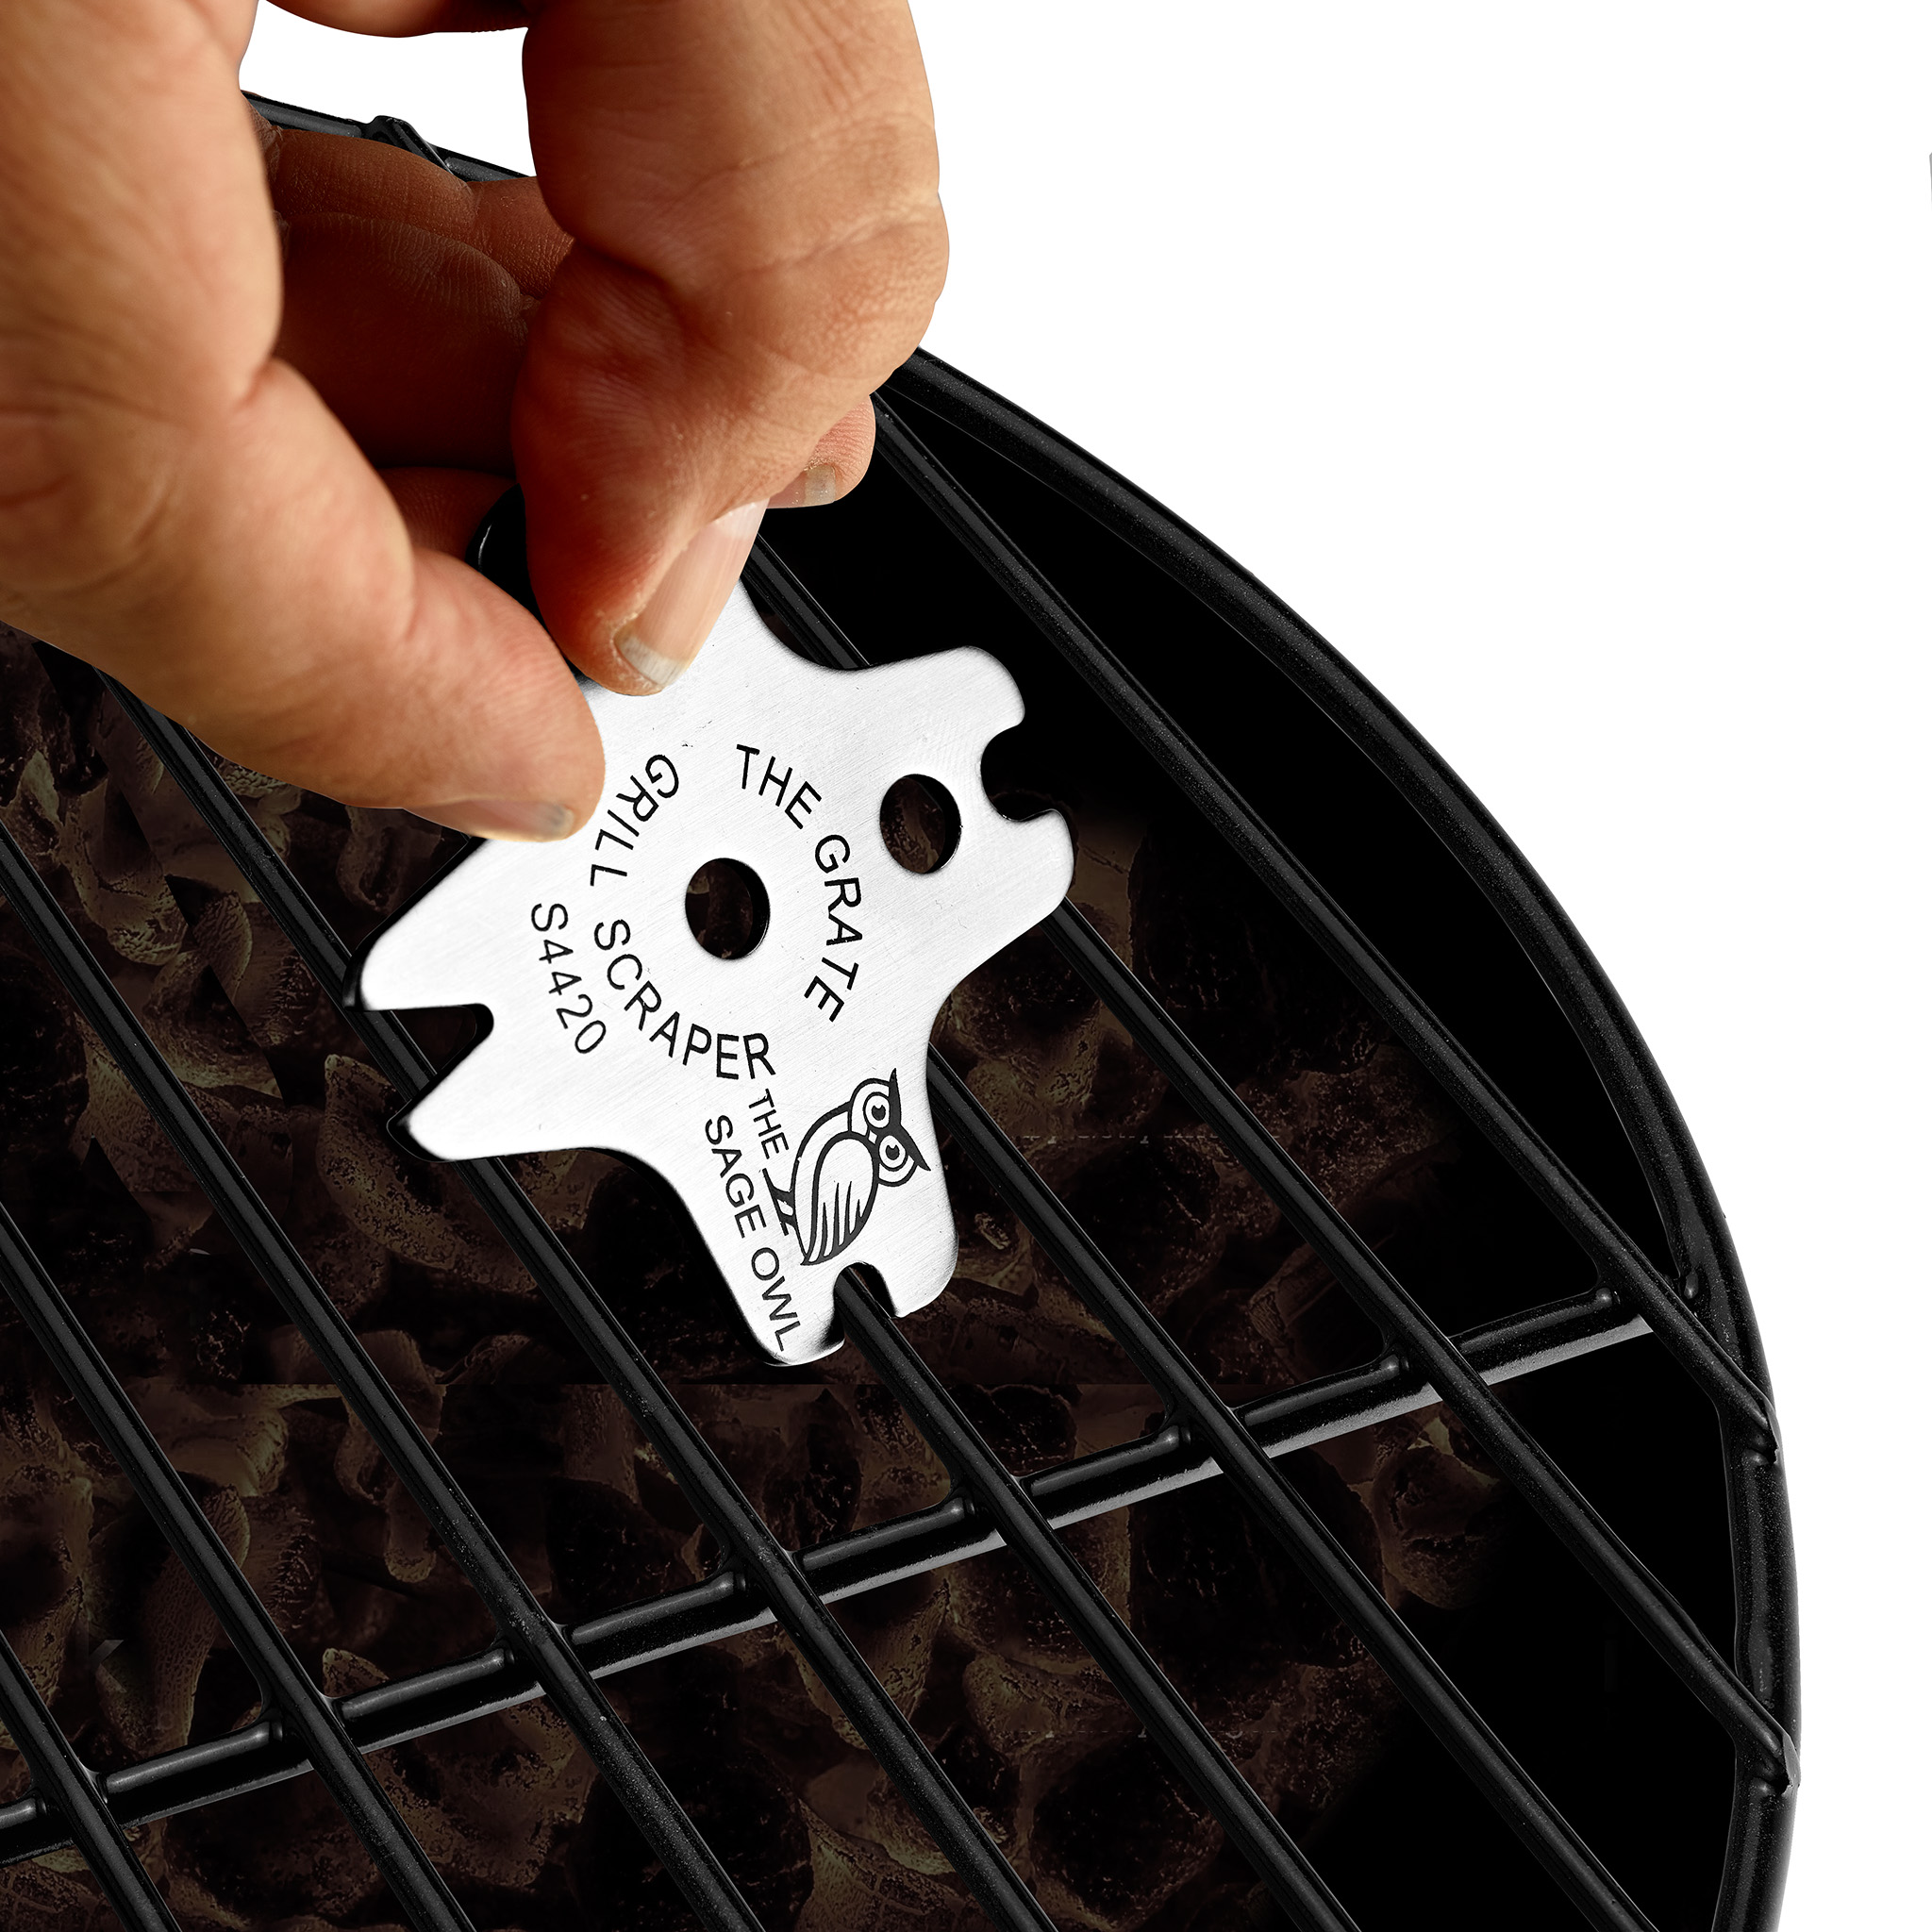 S4420 - The Grate Grill Scraper - Stainless Steel Barbecue Tool